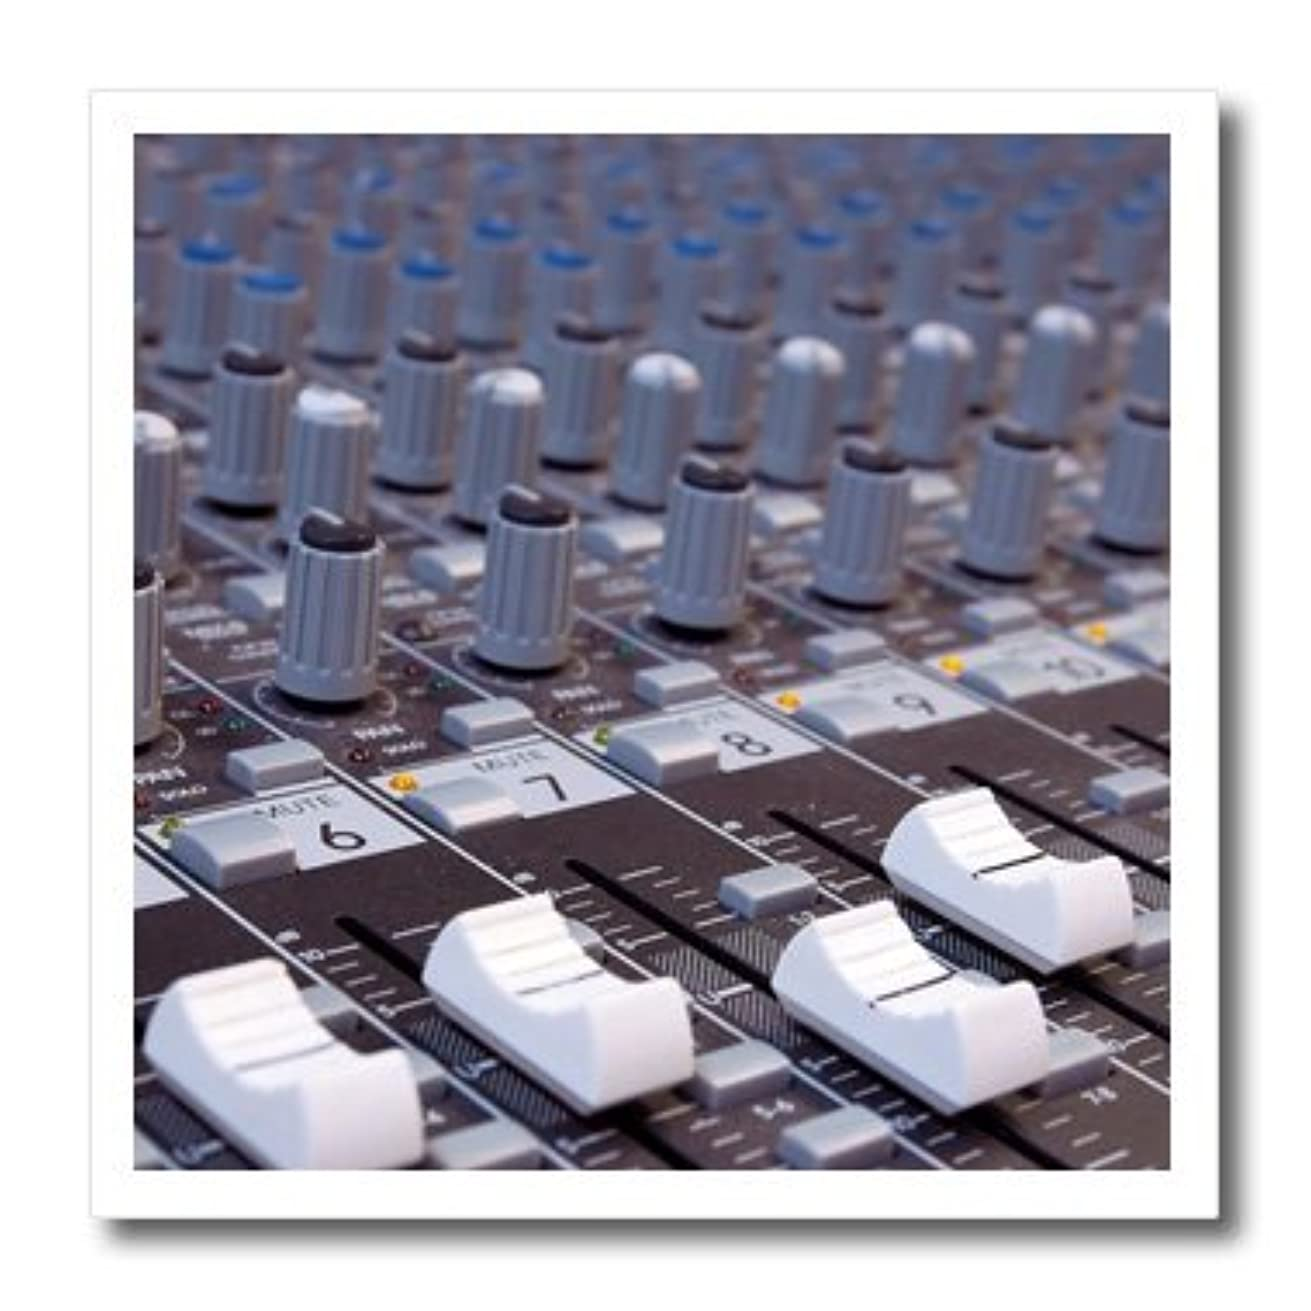 3dRose ht_155066_2 Audio Mixer Board Engineer Knobs Sliders Buttons Studio Recording Iron on Heat Transfer Paper for White Material, 6 by 6-Inch